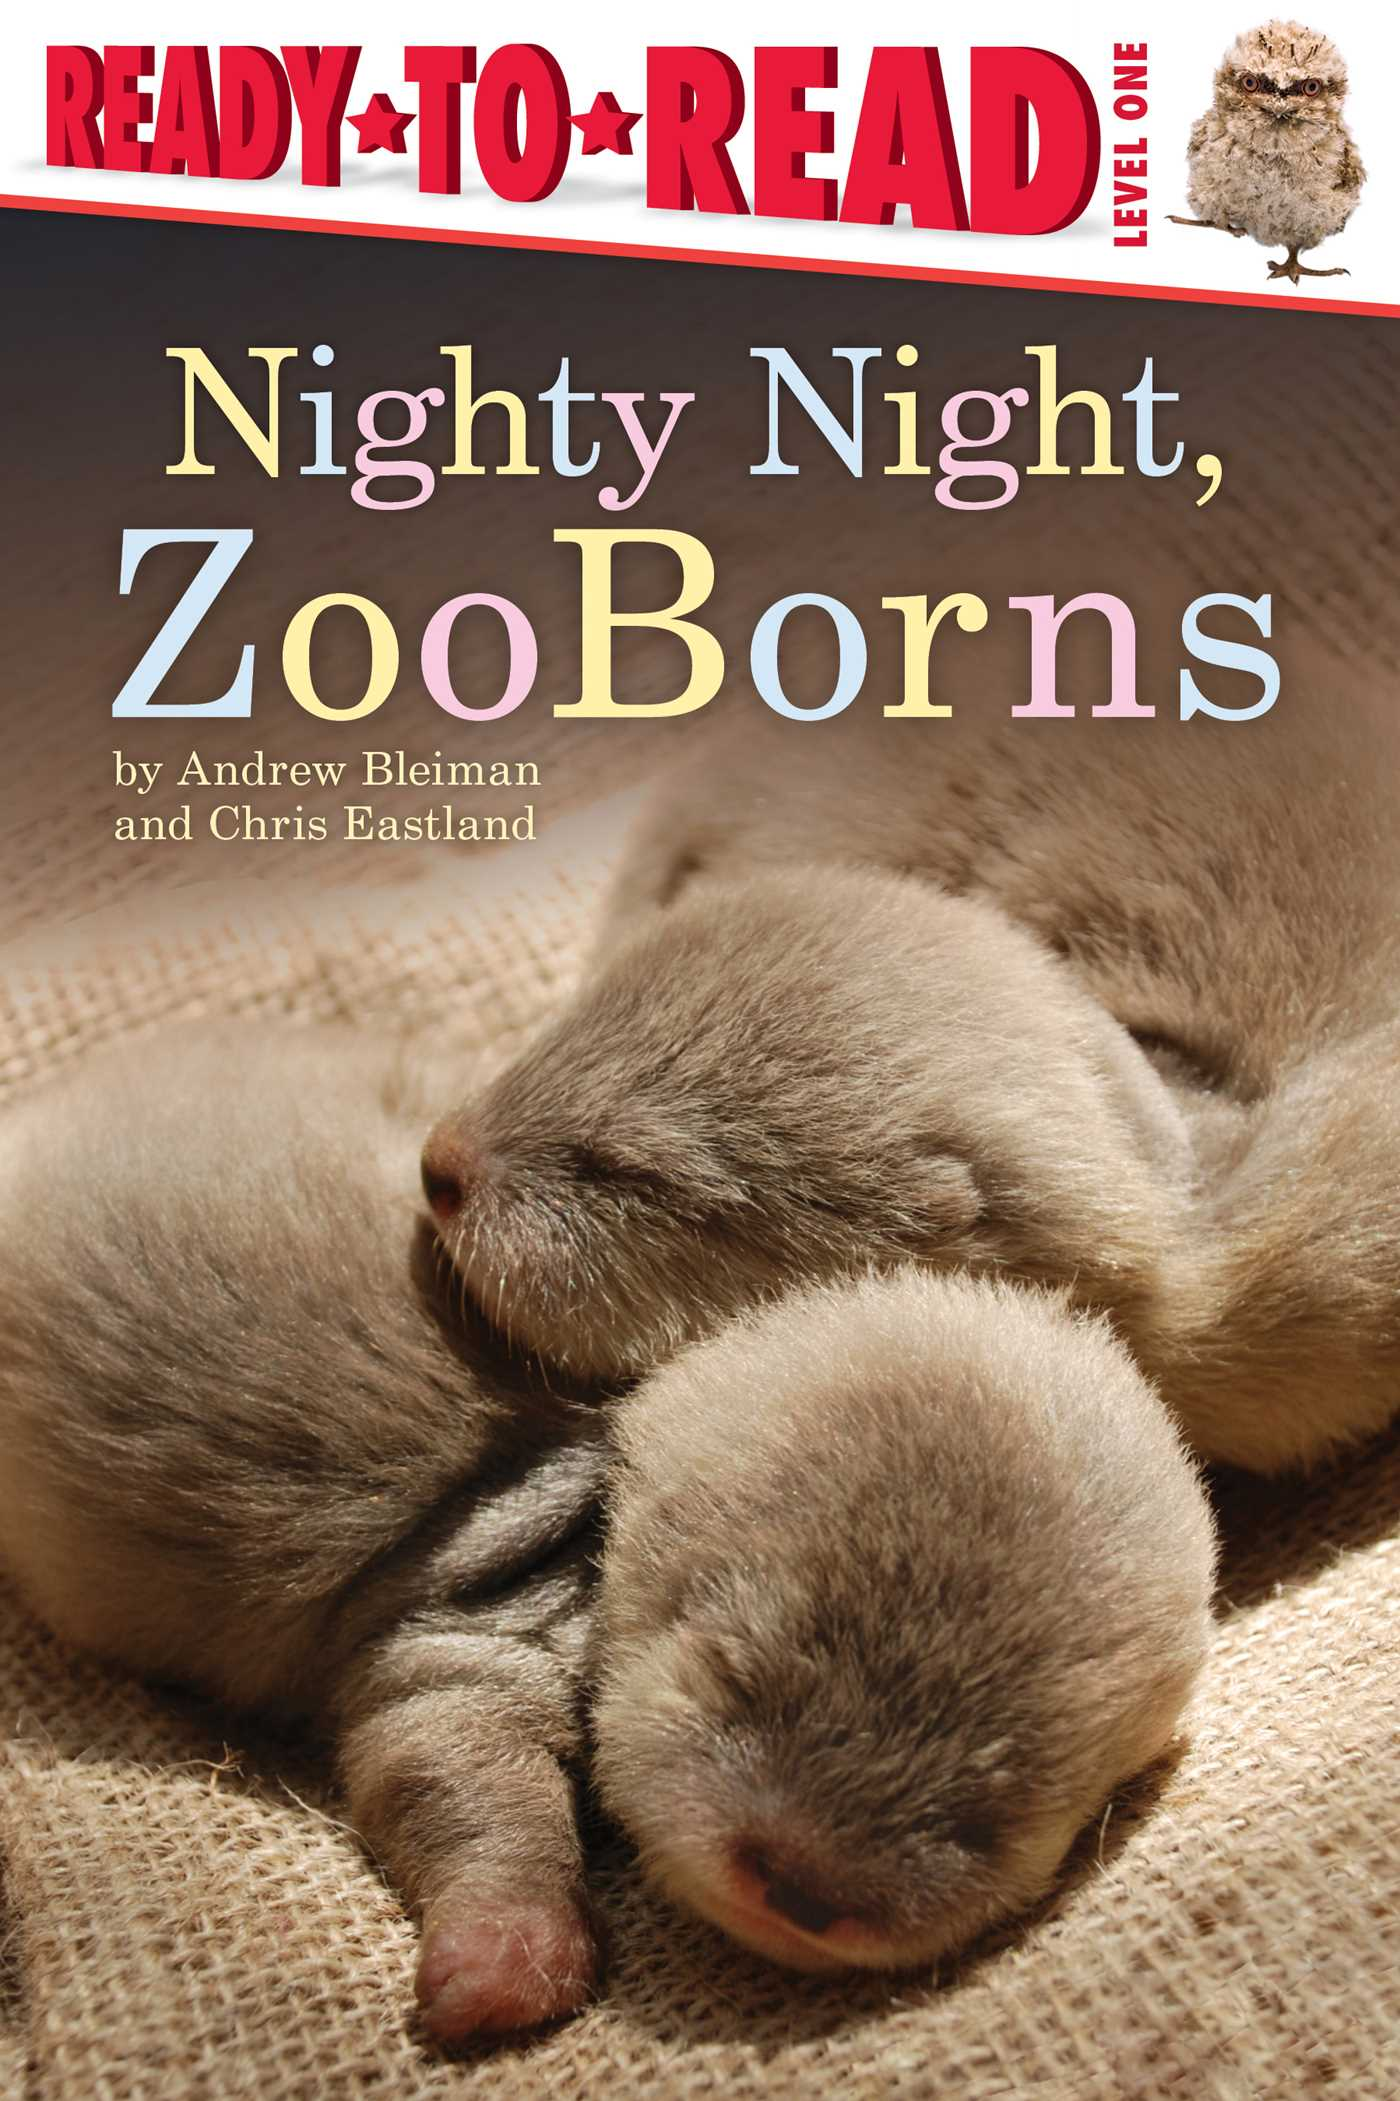 Nighty night zooborns 9781442443877 hr